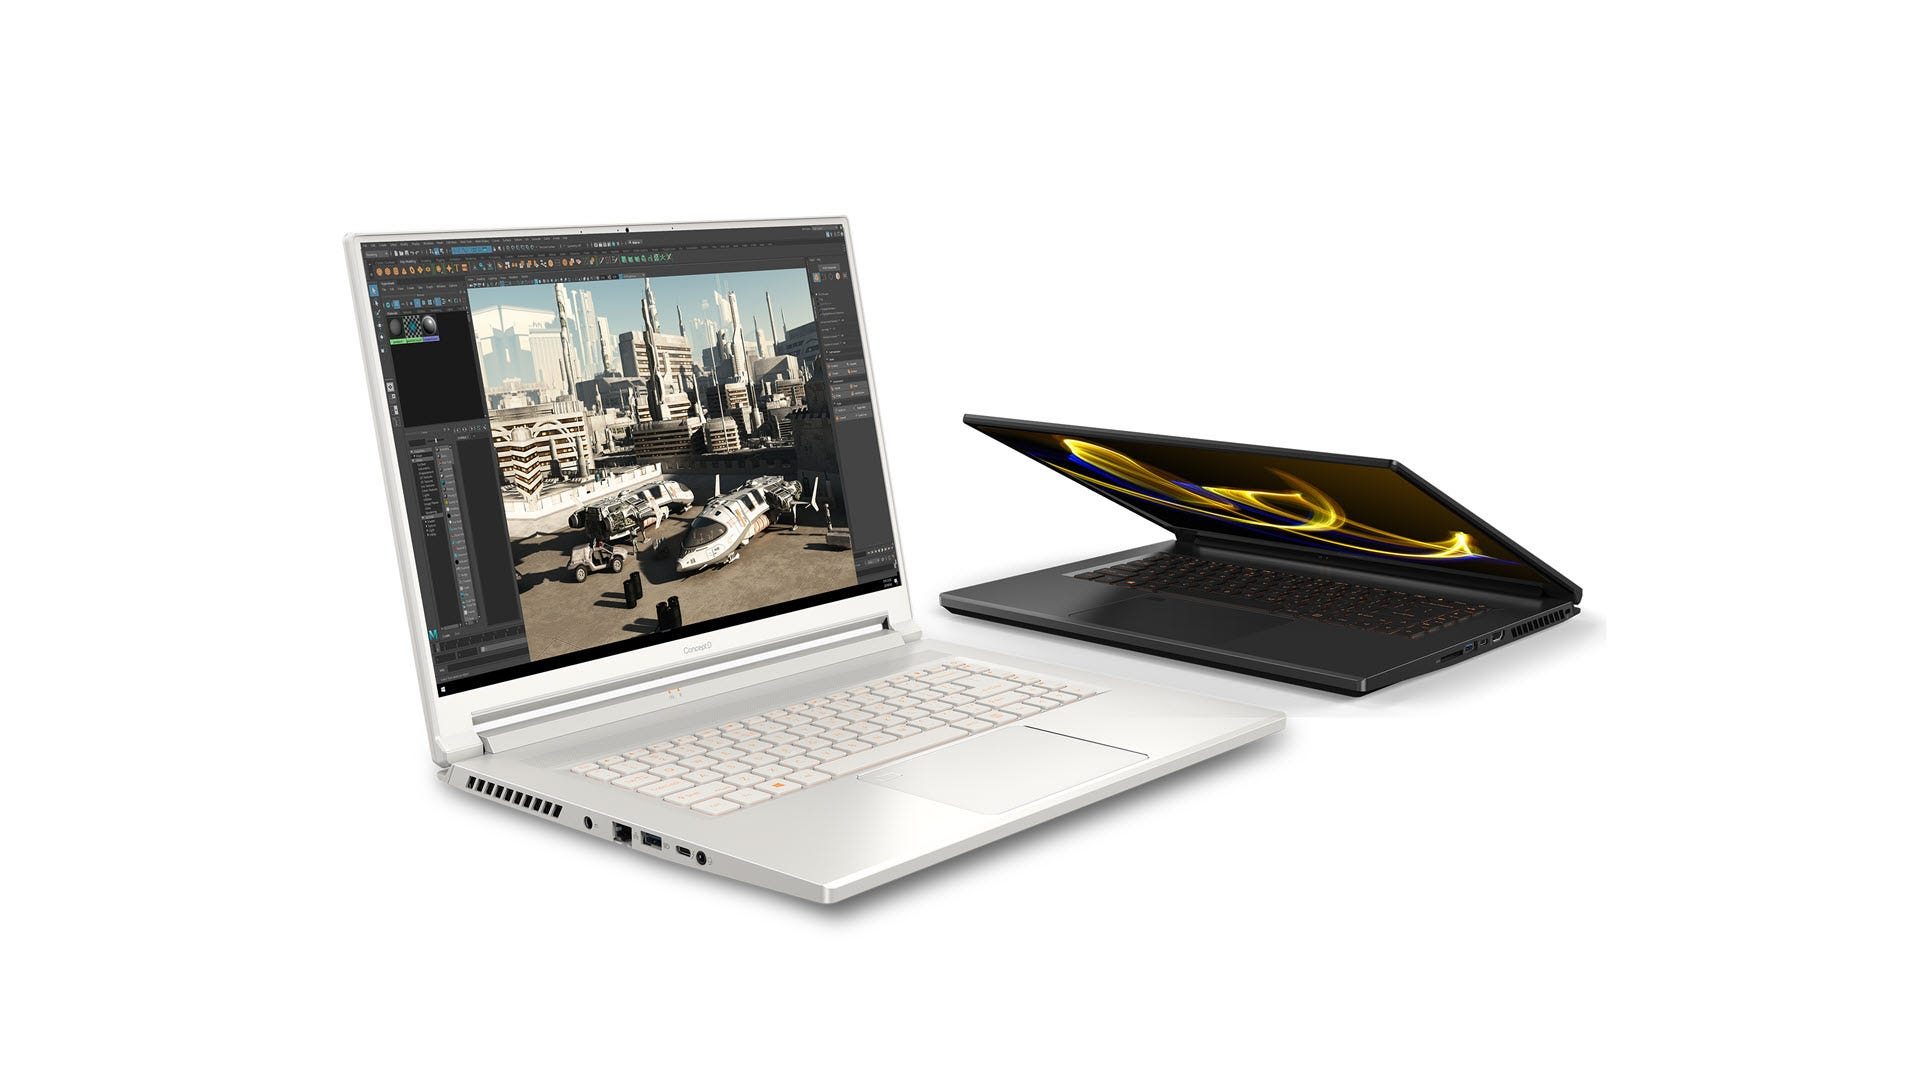 Two ConceptD 5 laptops in silver and black.